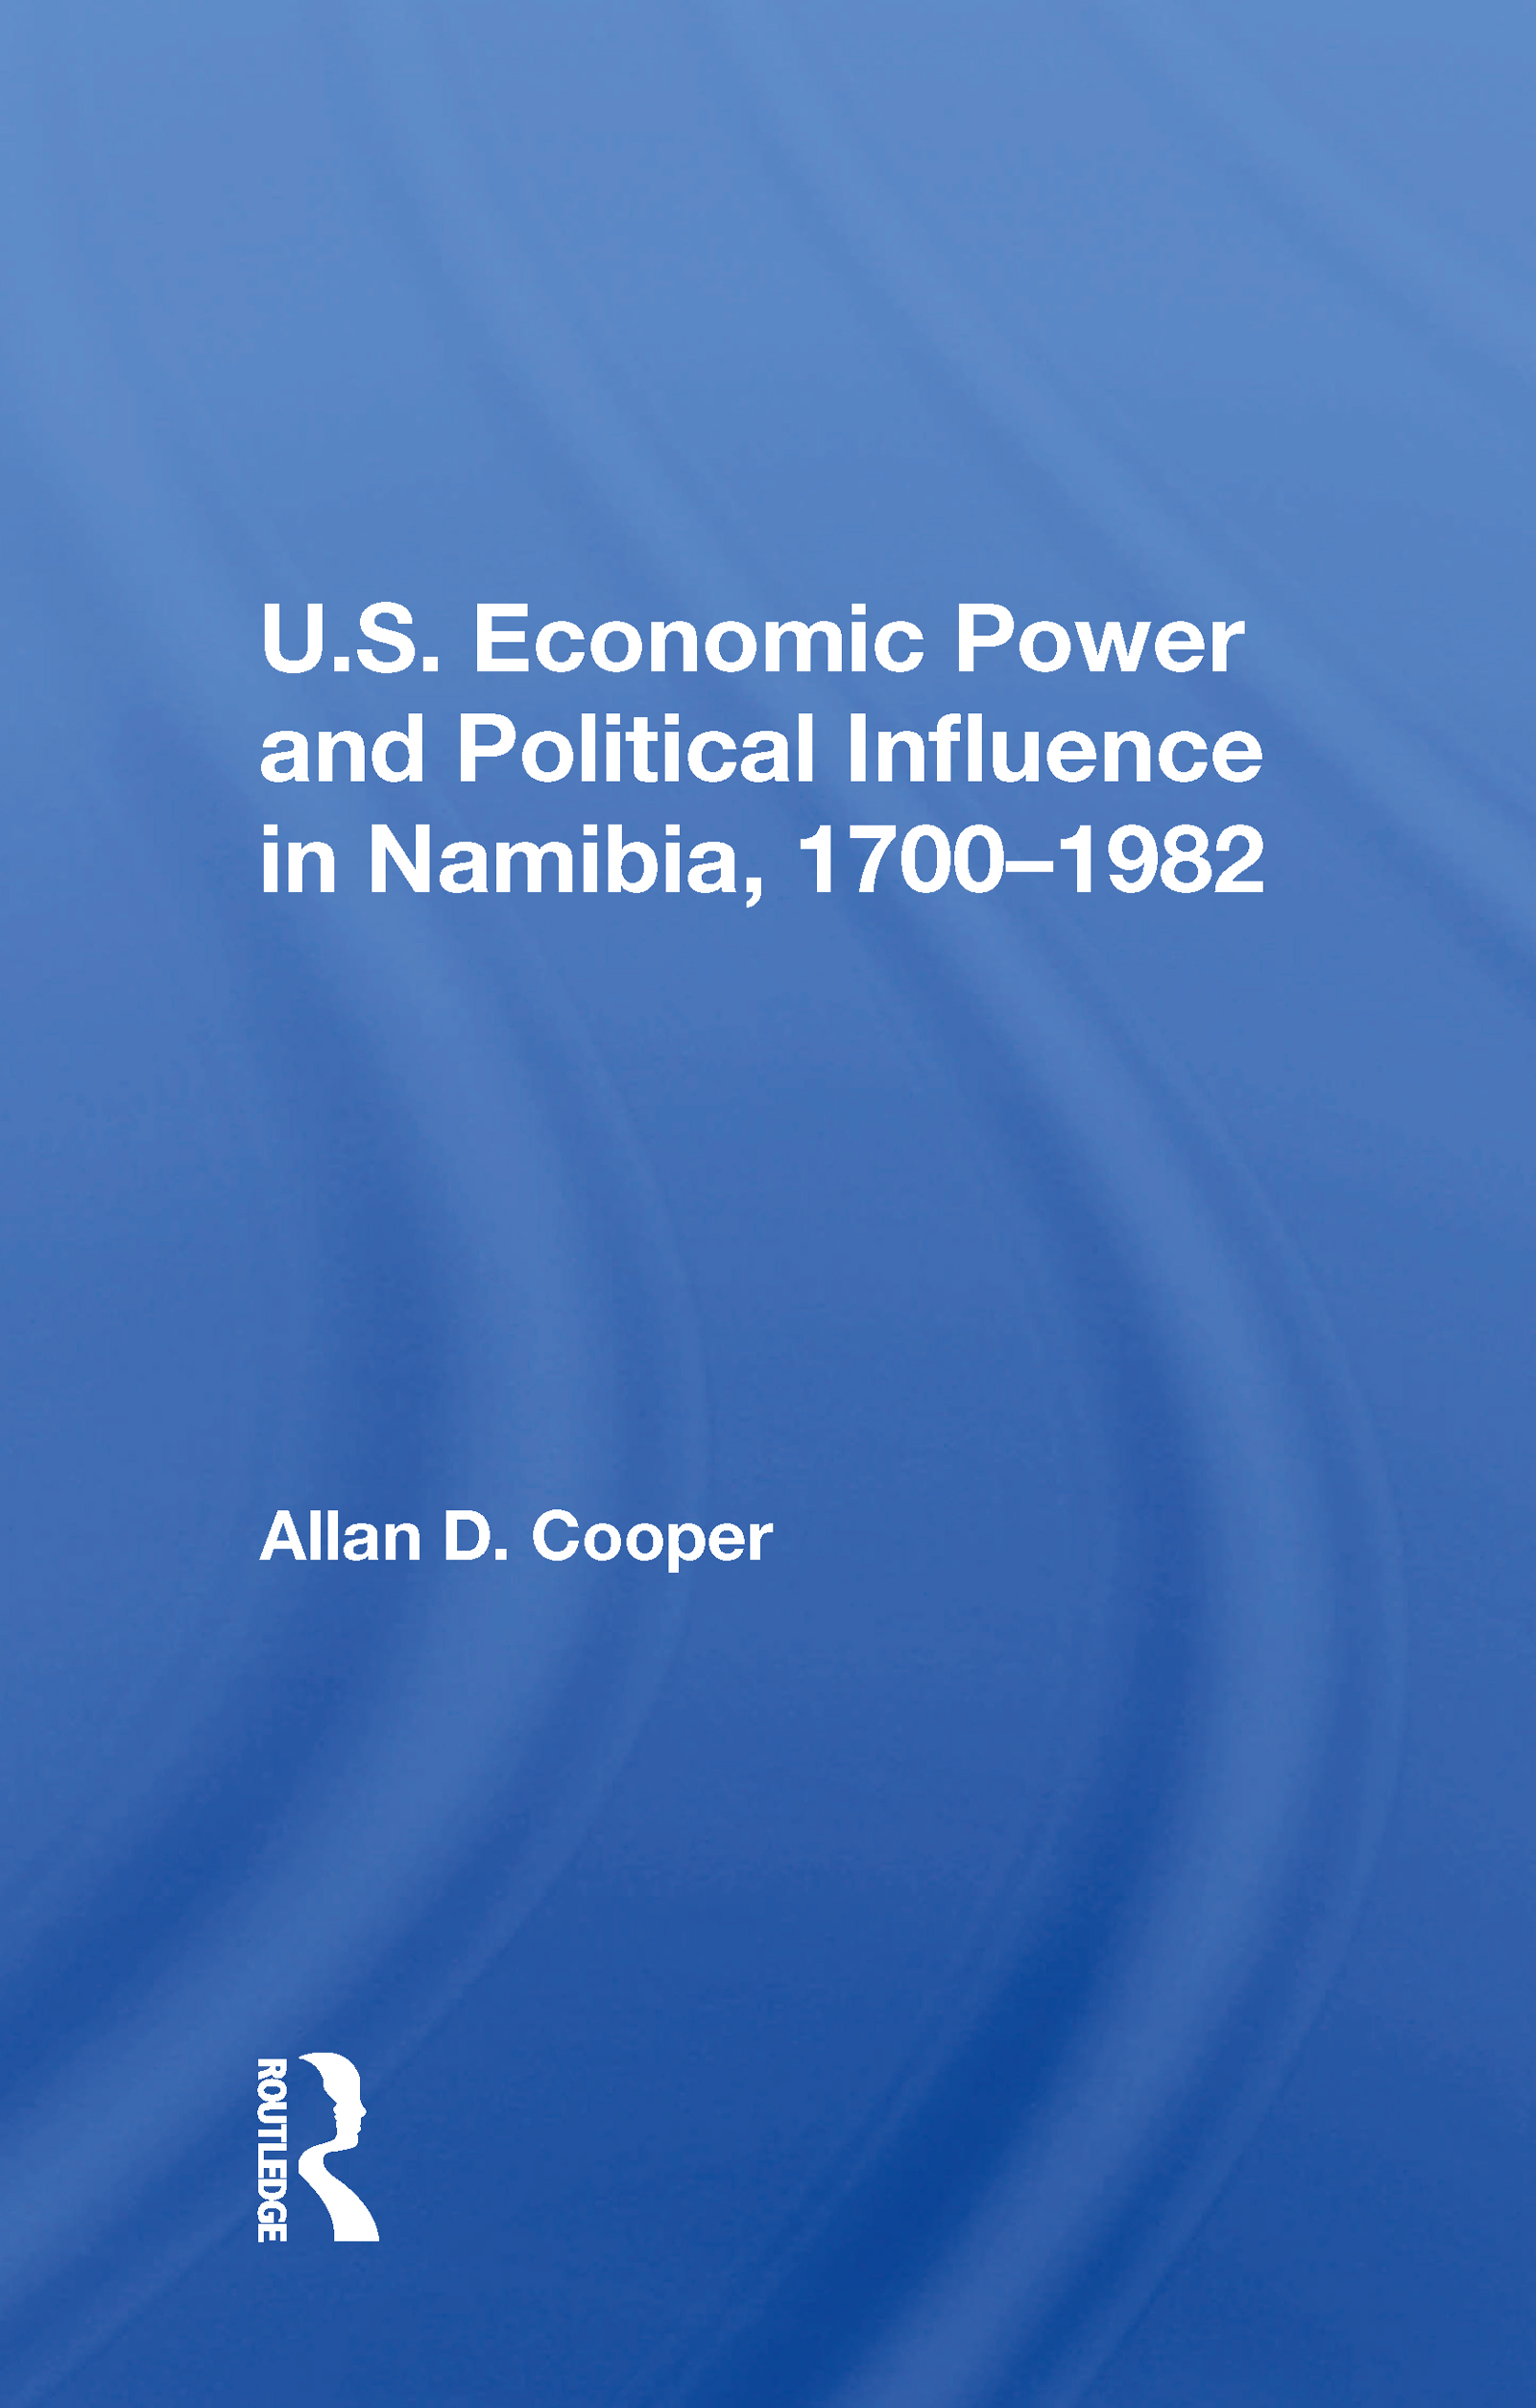 U.S. Economic Power And Political Influence In Namibia, 1700-1982